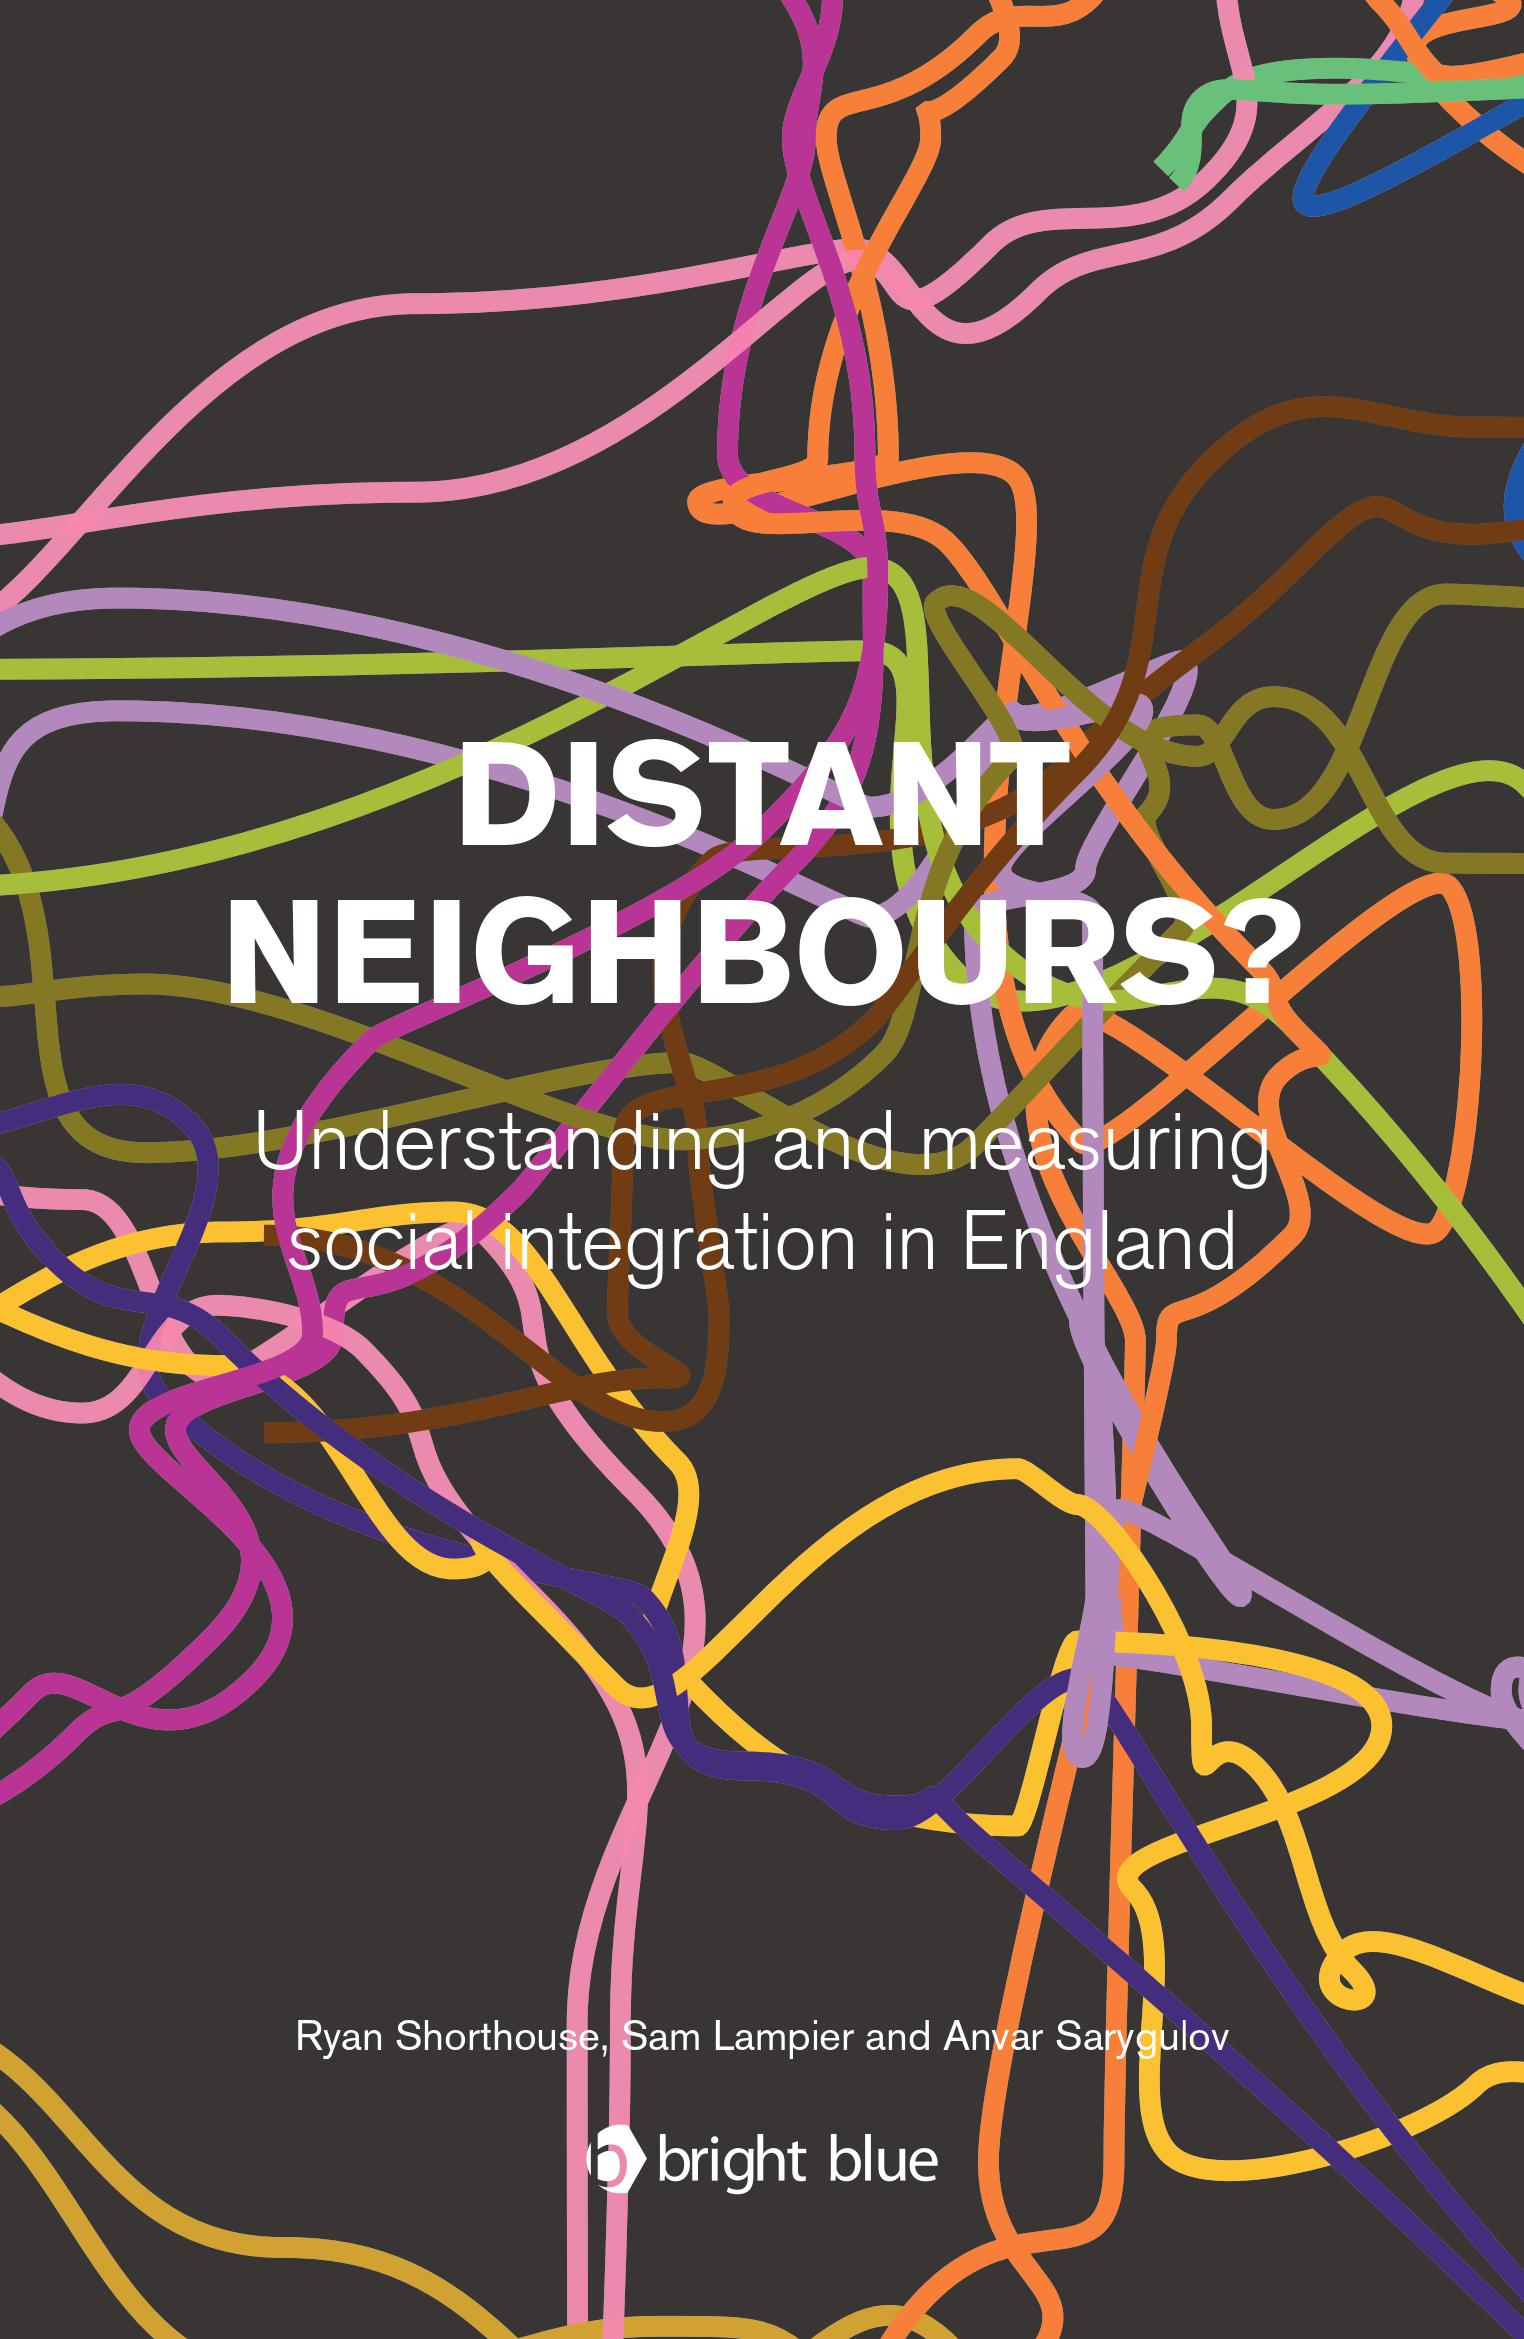 Distant-neighbours-cover.jpg